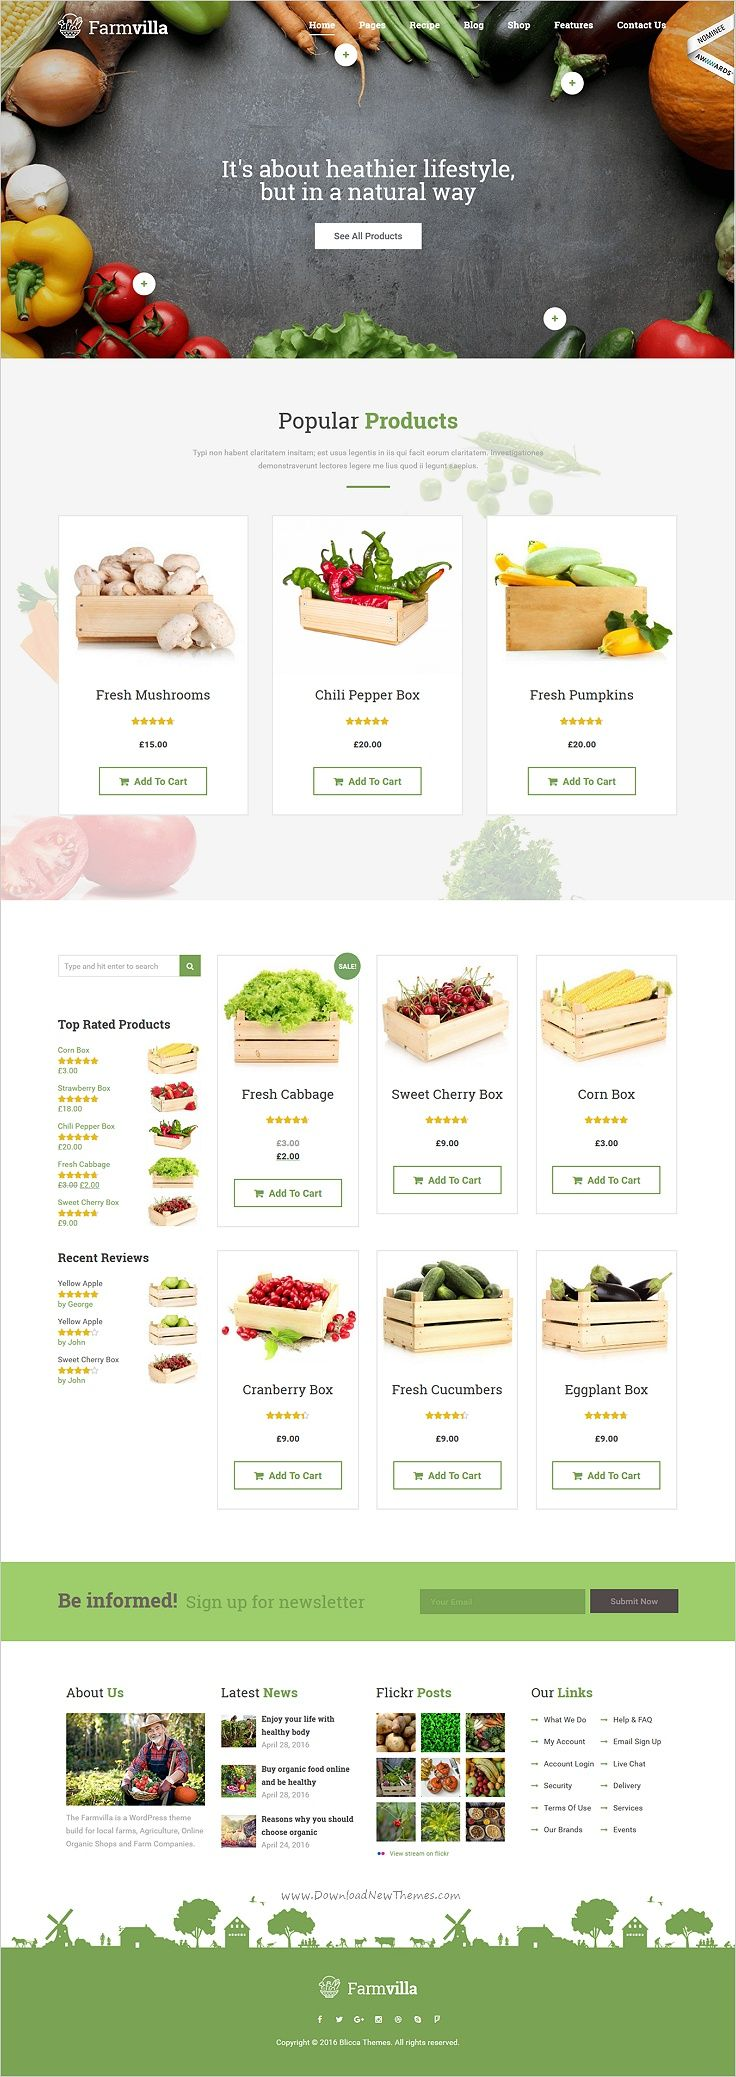 Farmvilla is a clean and modern #WordPress theme for organic #food #shop website with 6 amazing responsive homepage layouts download now➯ https://themeforest.net/item/farmvilla-organic-food-wordpress-theme/16226773?ref=Datasata